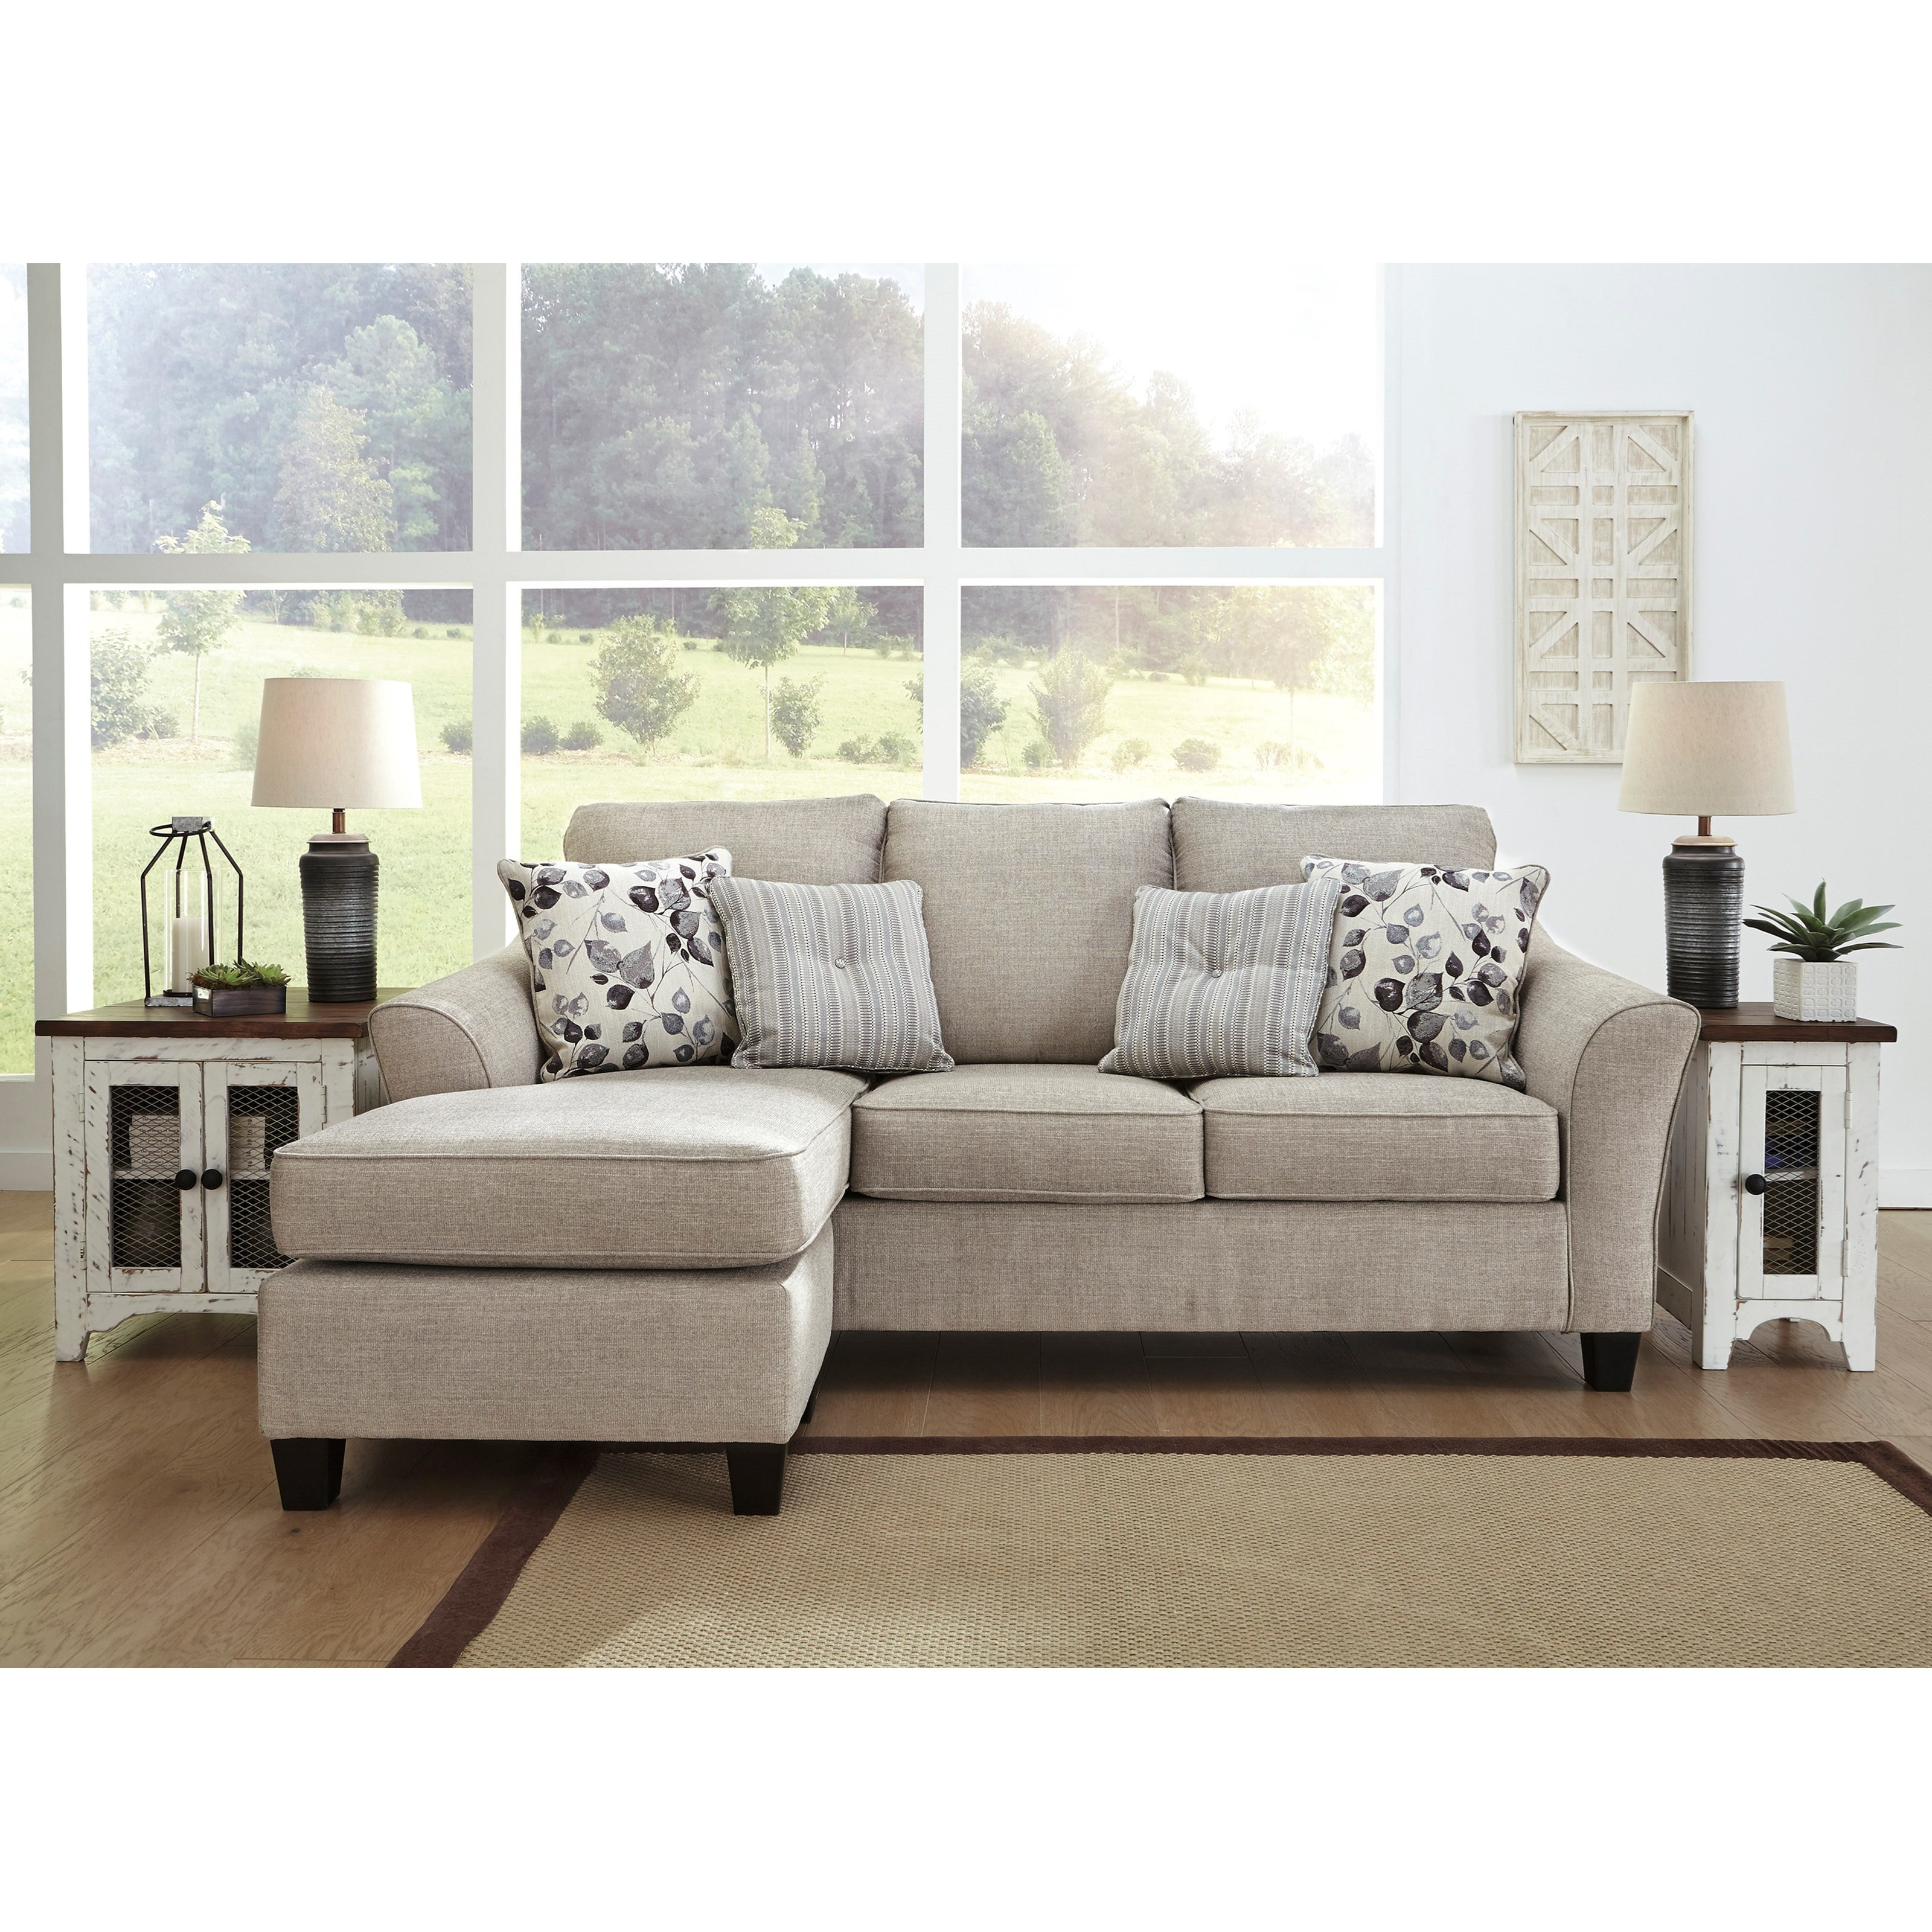 Abney Sofa Chaise Queen Sleeper by Benchcraft at Fisher Home Furnishings